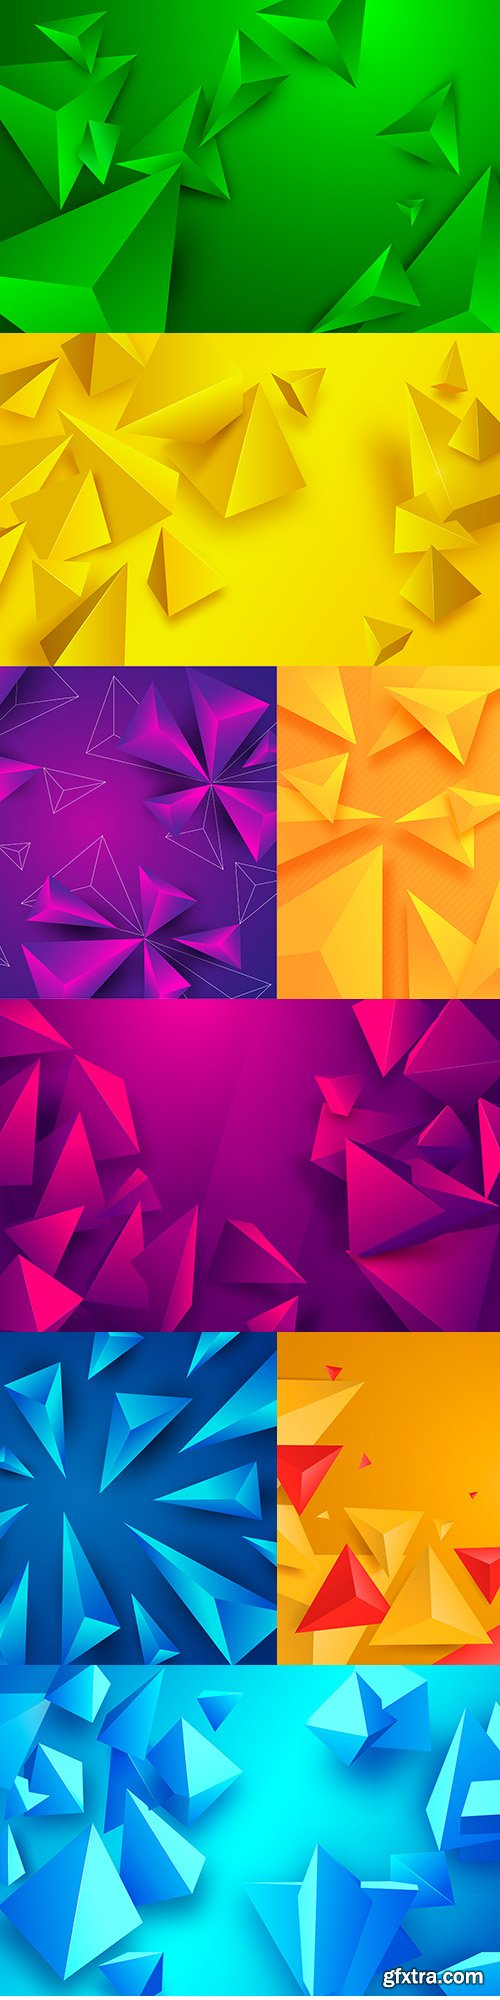 Bright background with triangular figures